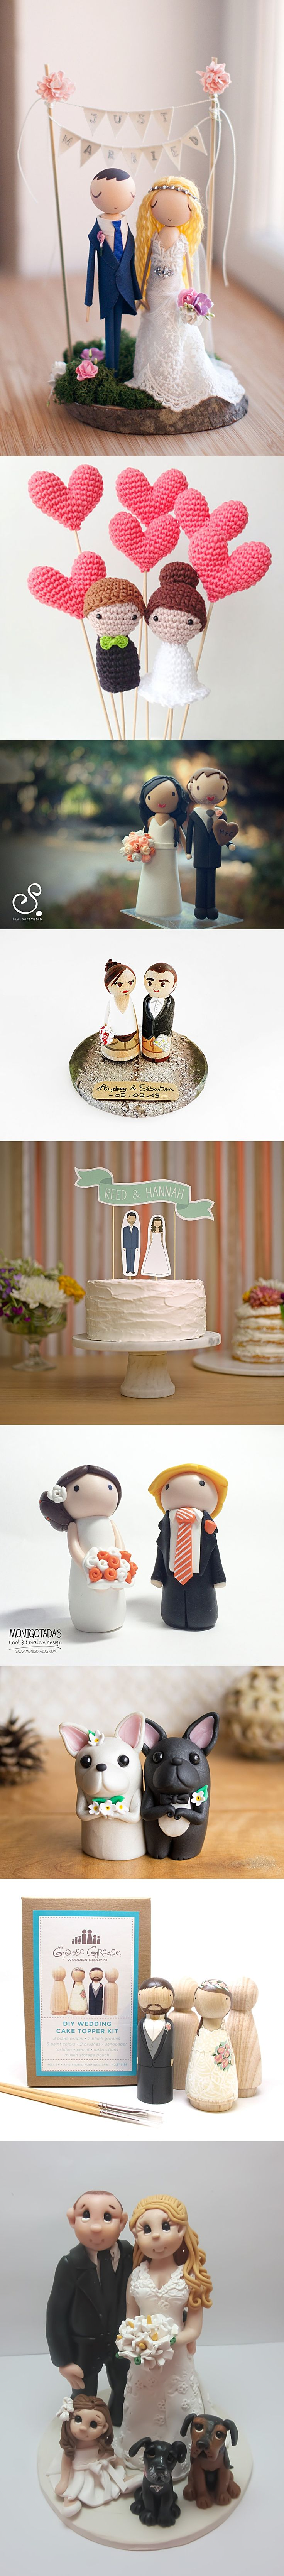 The cutest personalized wedding cake toppers EVER. Get a cake topper to be made to look like you and your future spouse. TOO ADORABLE!!